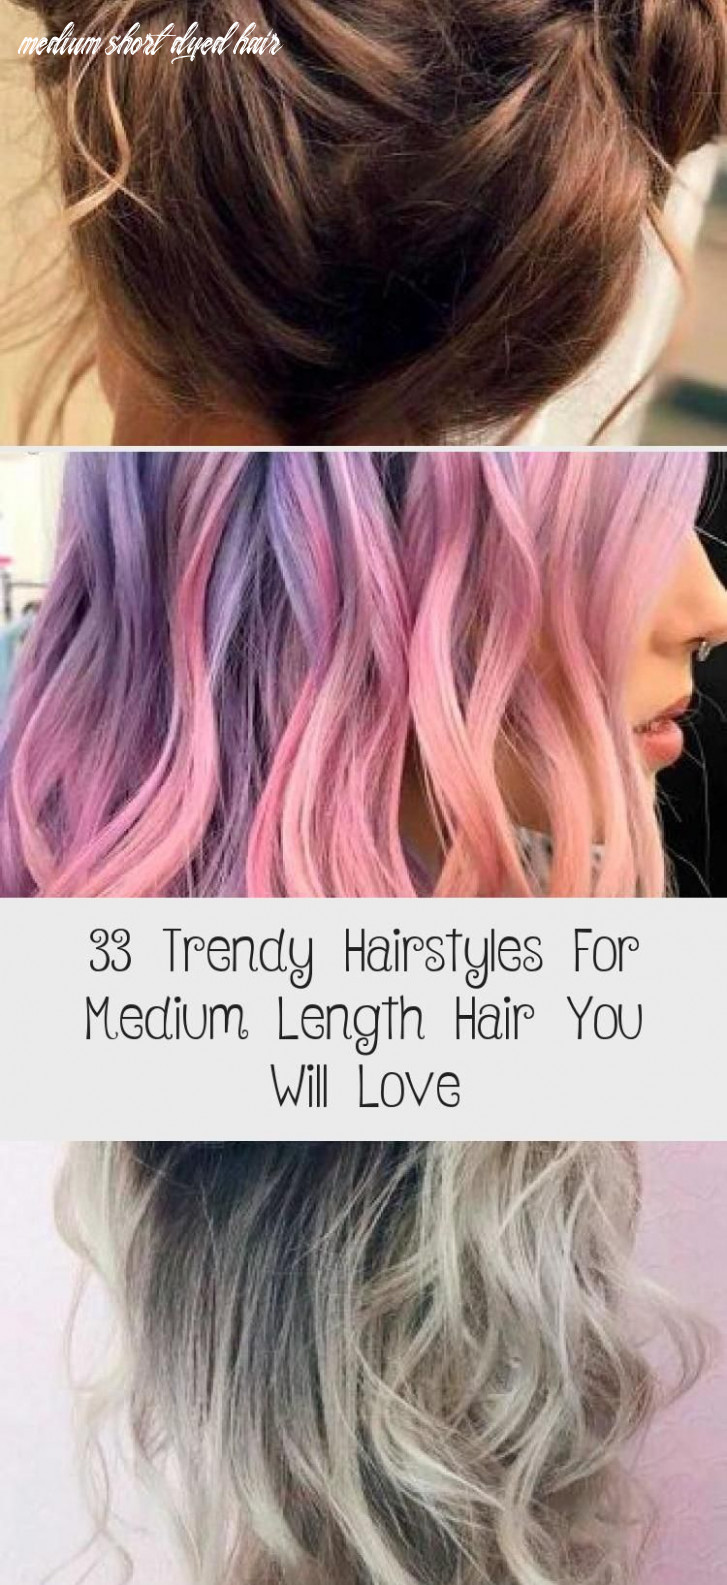 10 trendy hairstyles for medium length hair you will love in 10